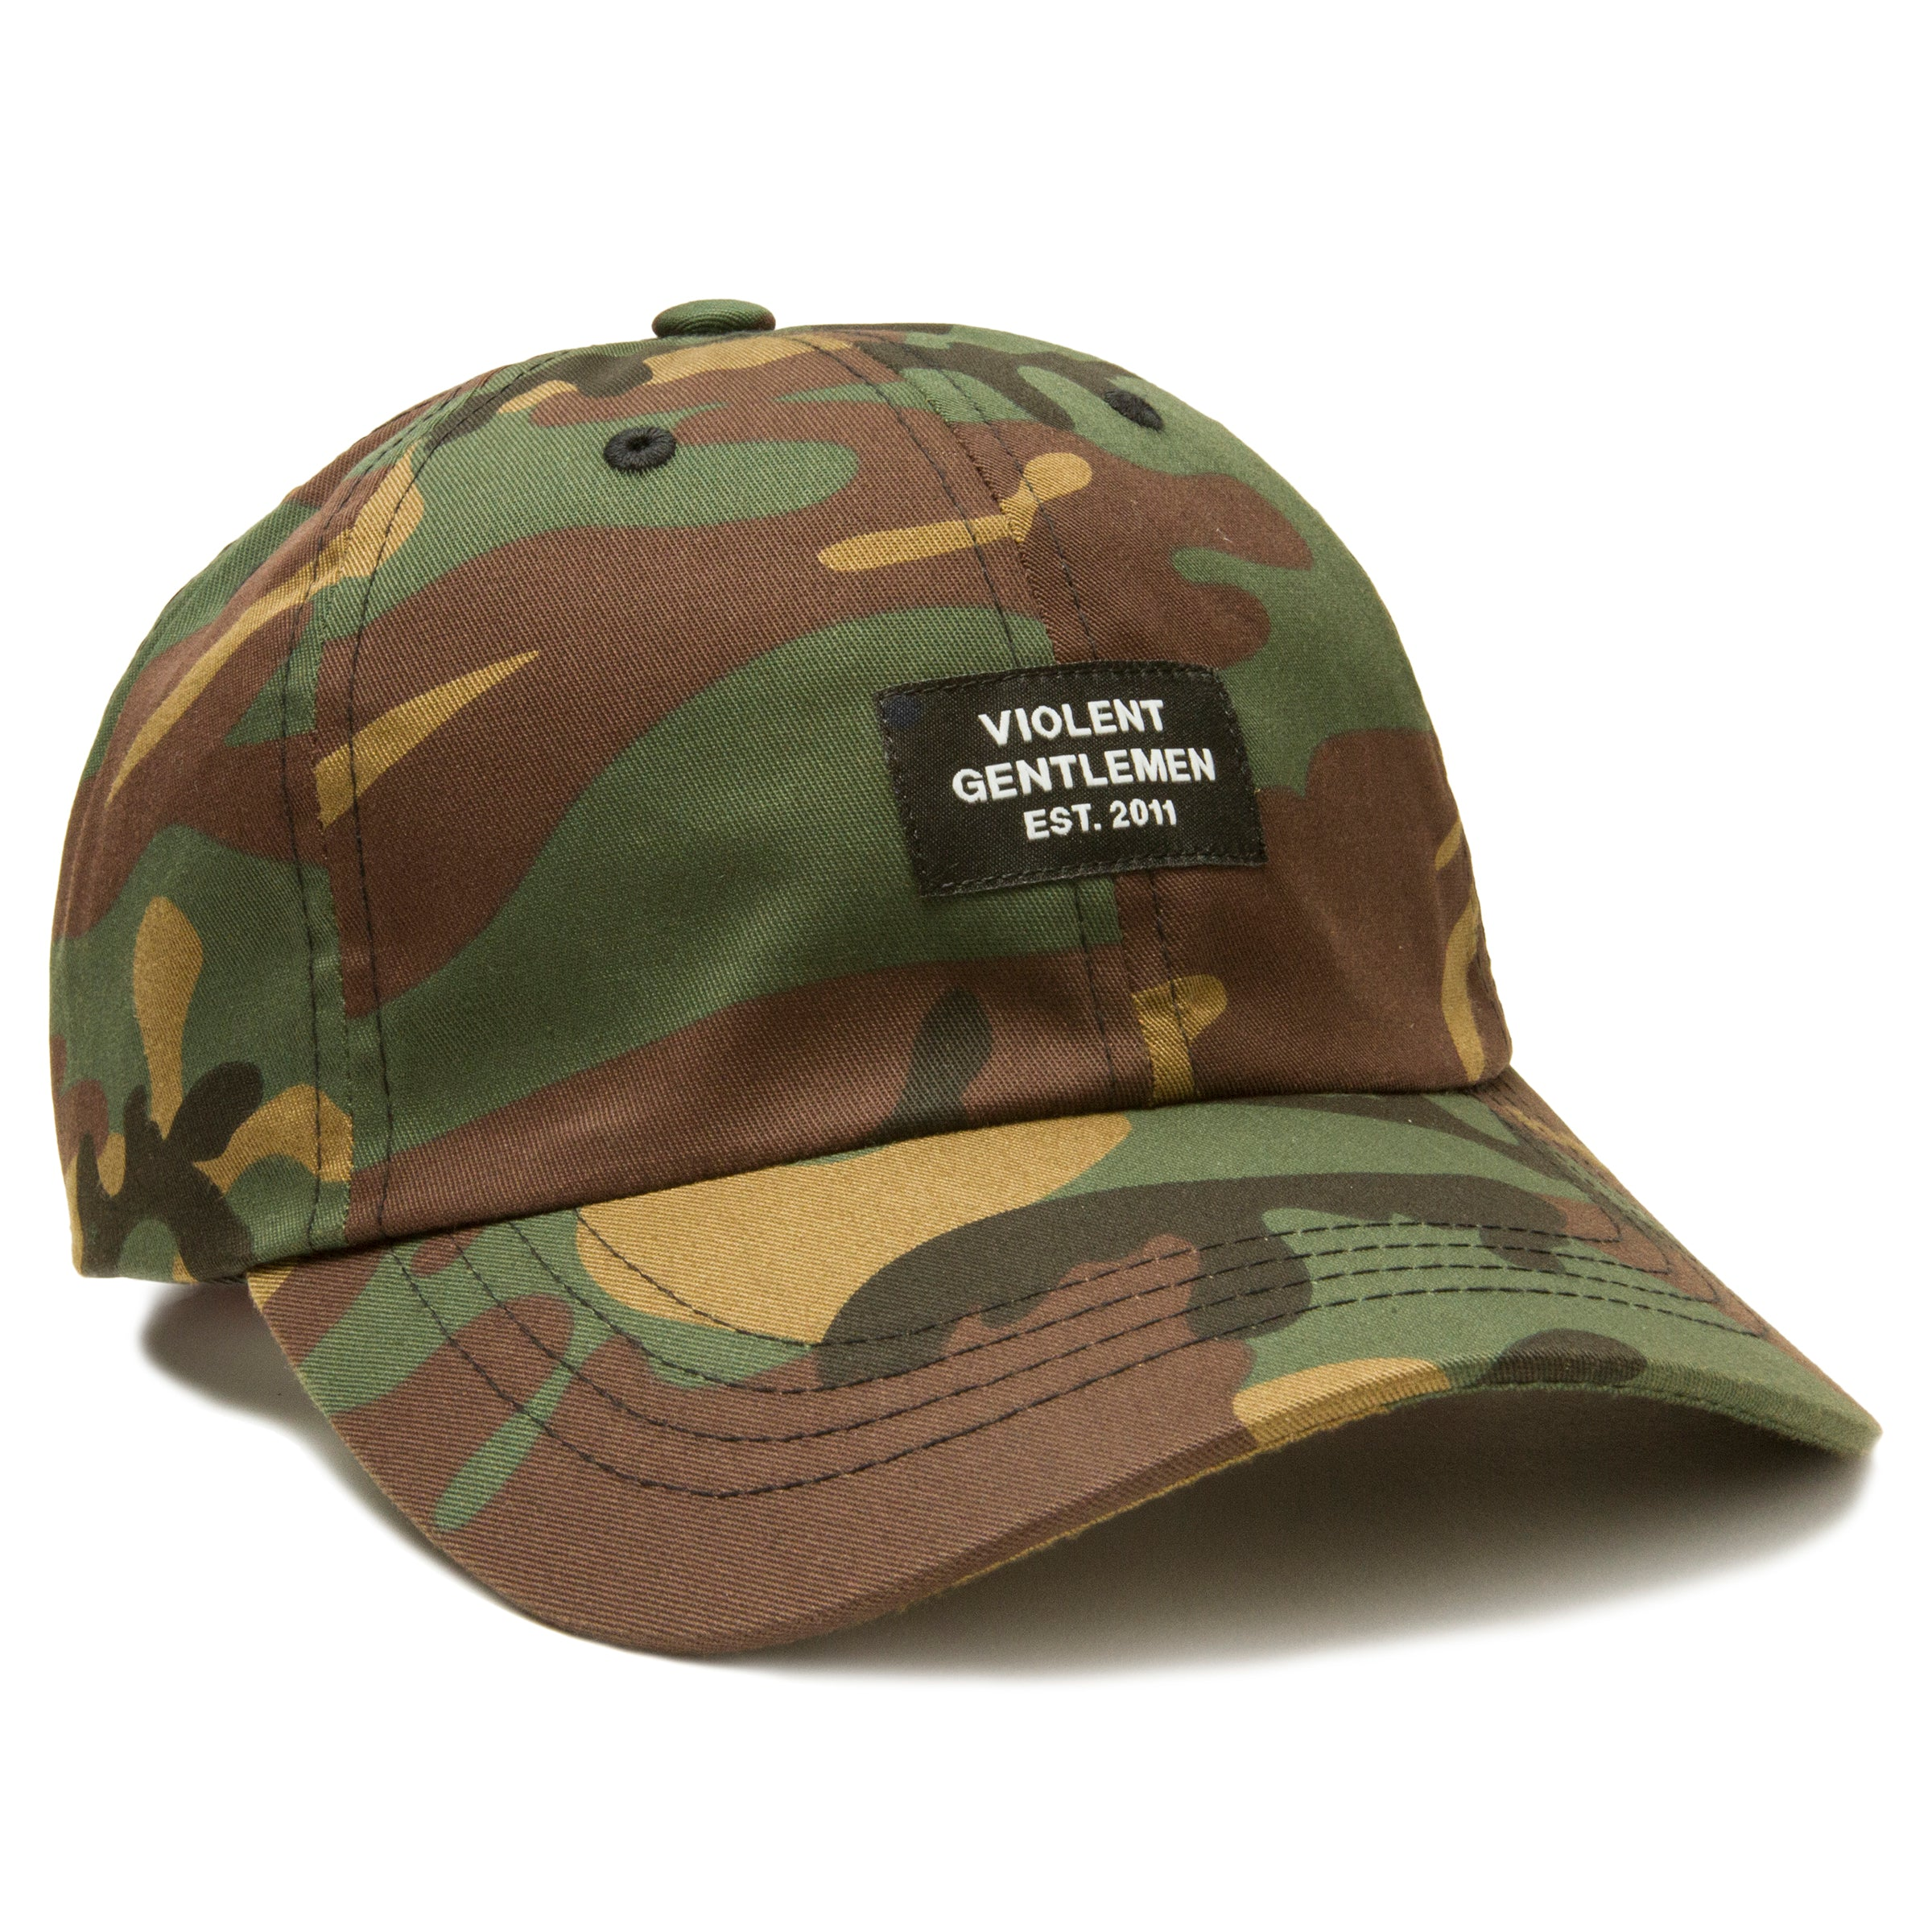 31d90c0b797 Lemieux Dad Hat - Camo - Hats - Violent Gentlemen